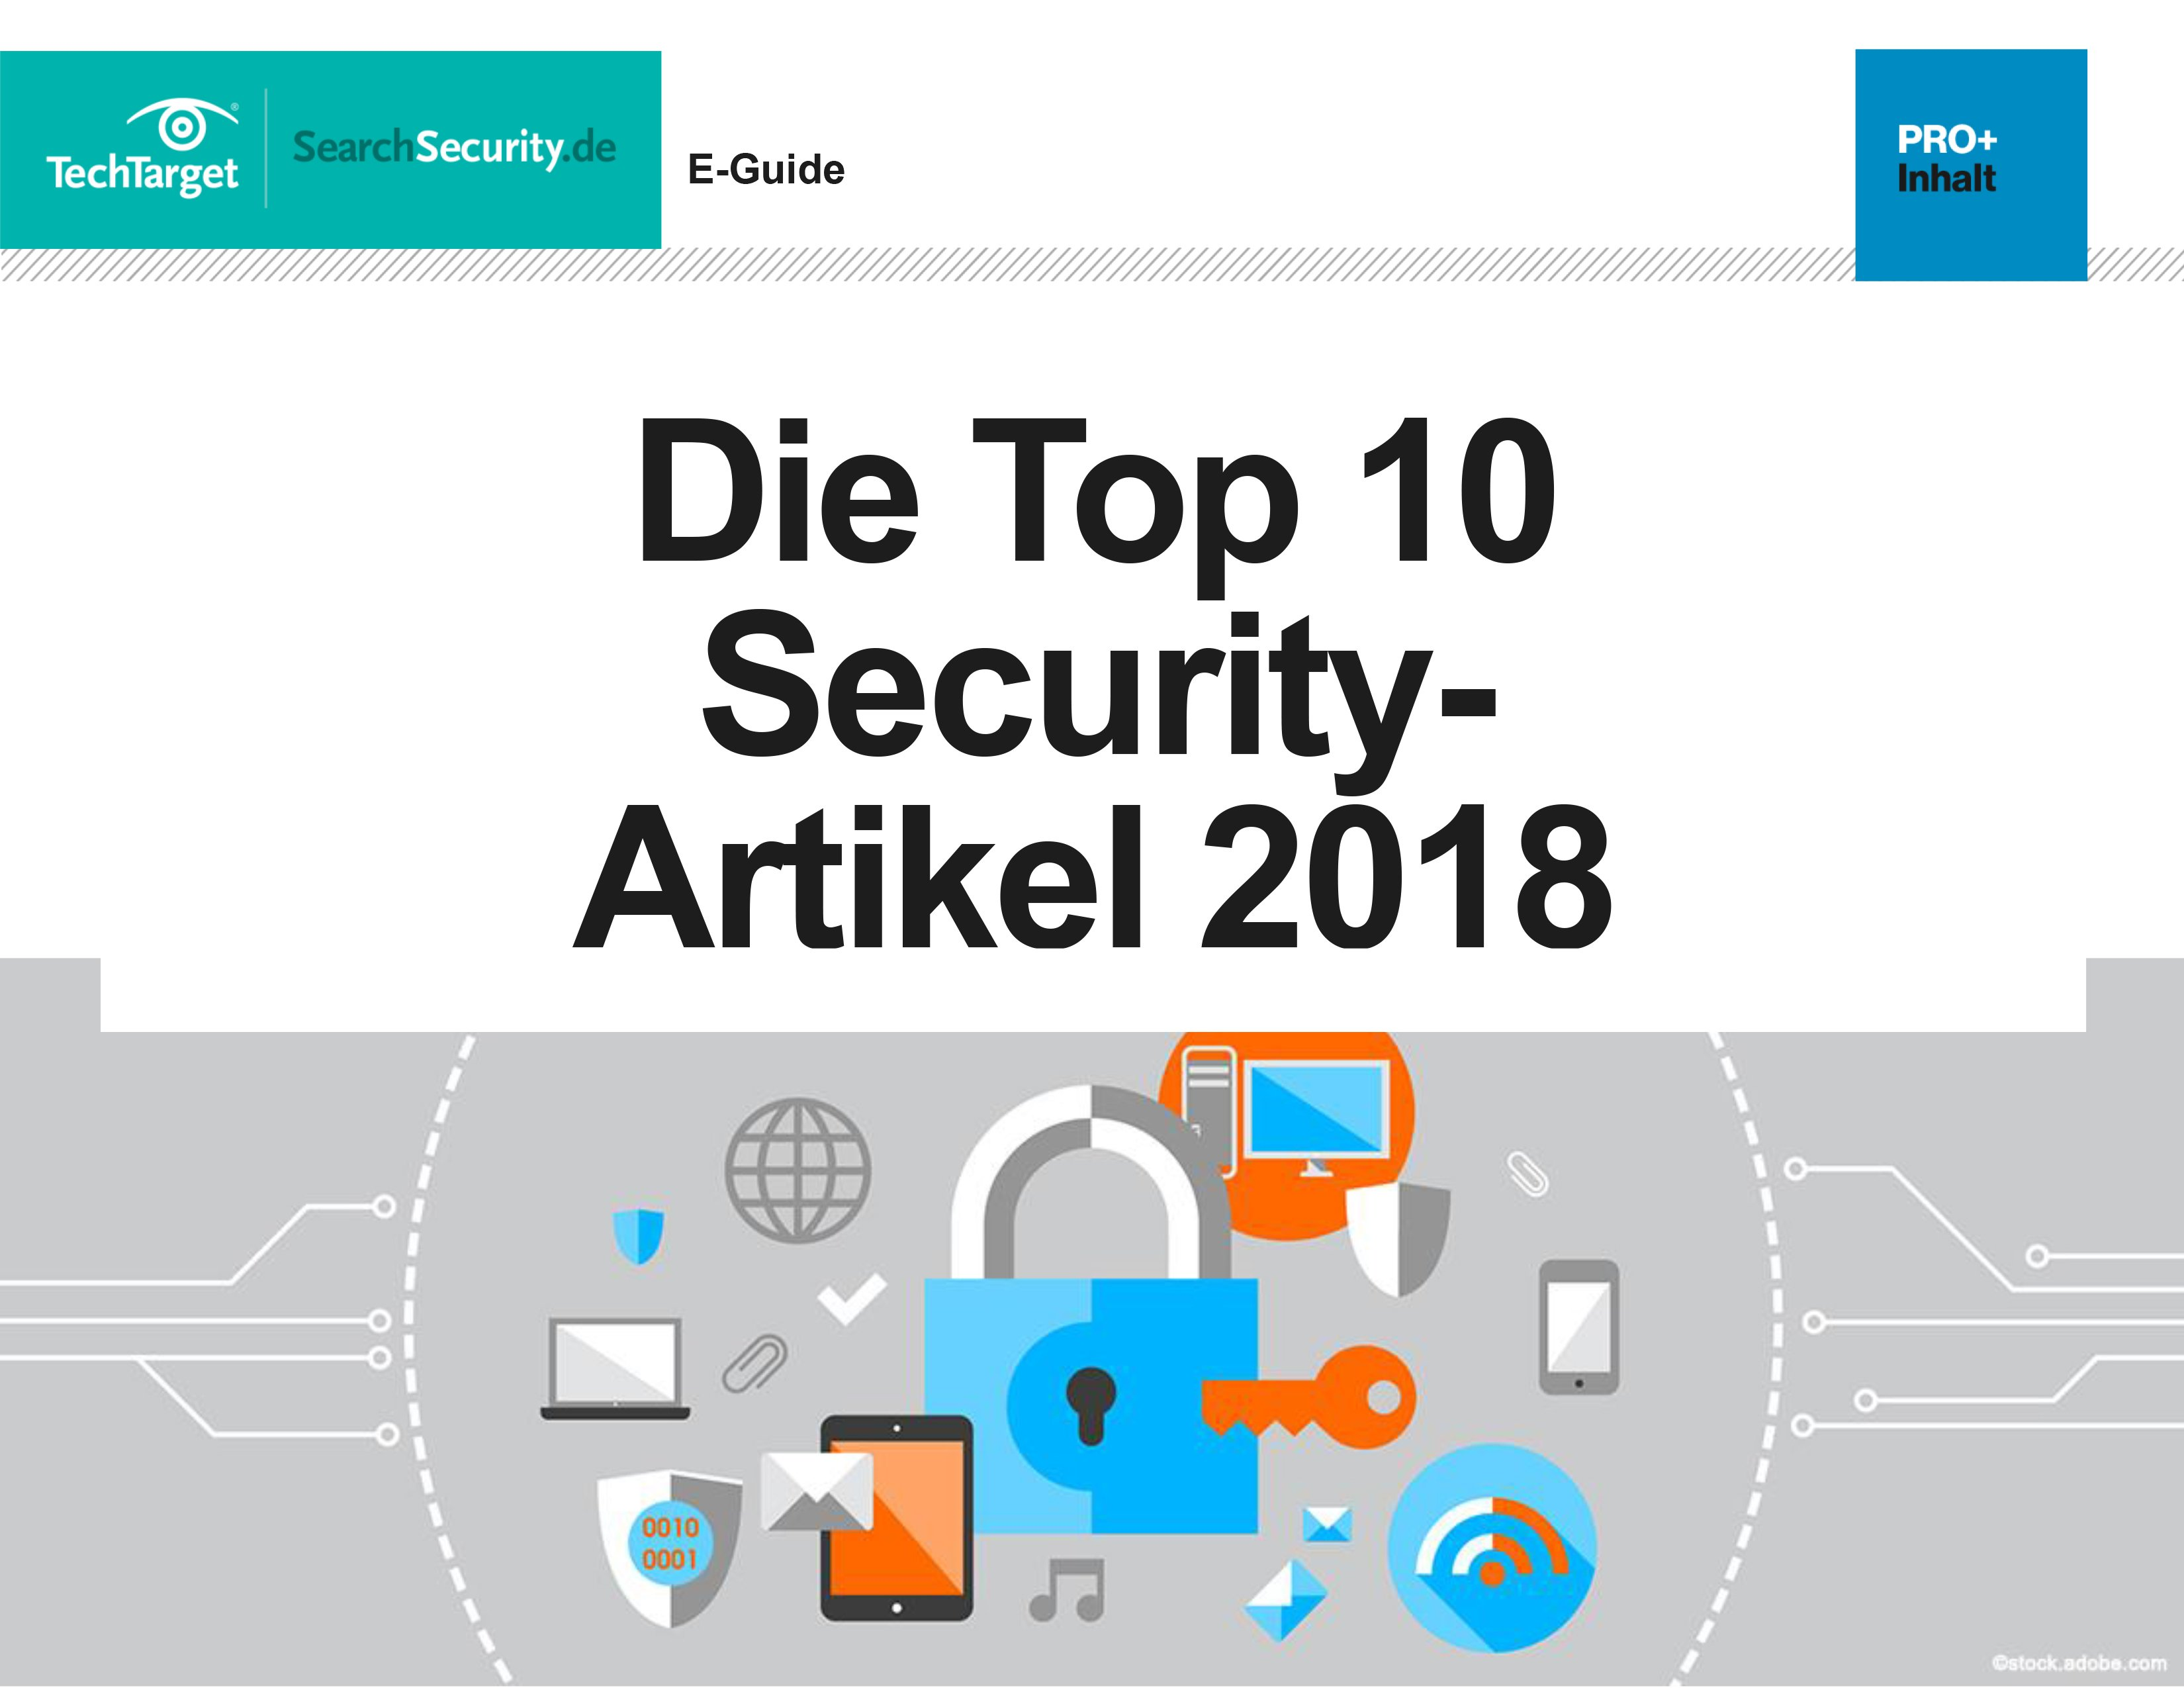 die top 10 security artikel 2018